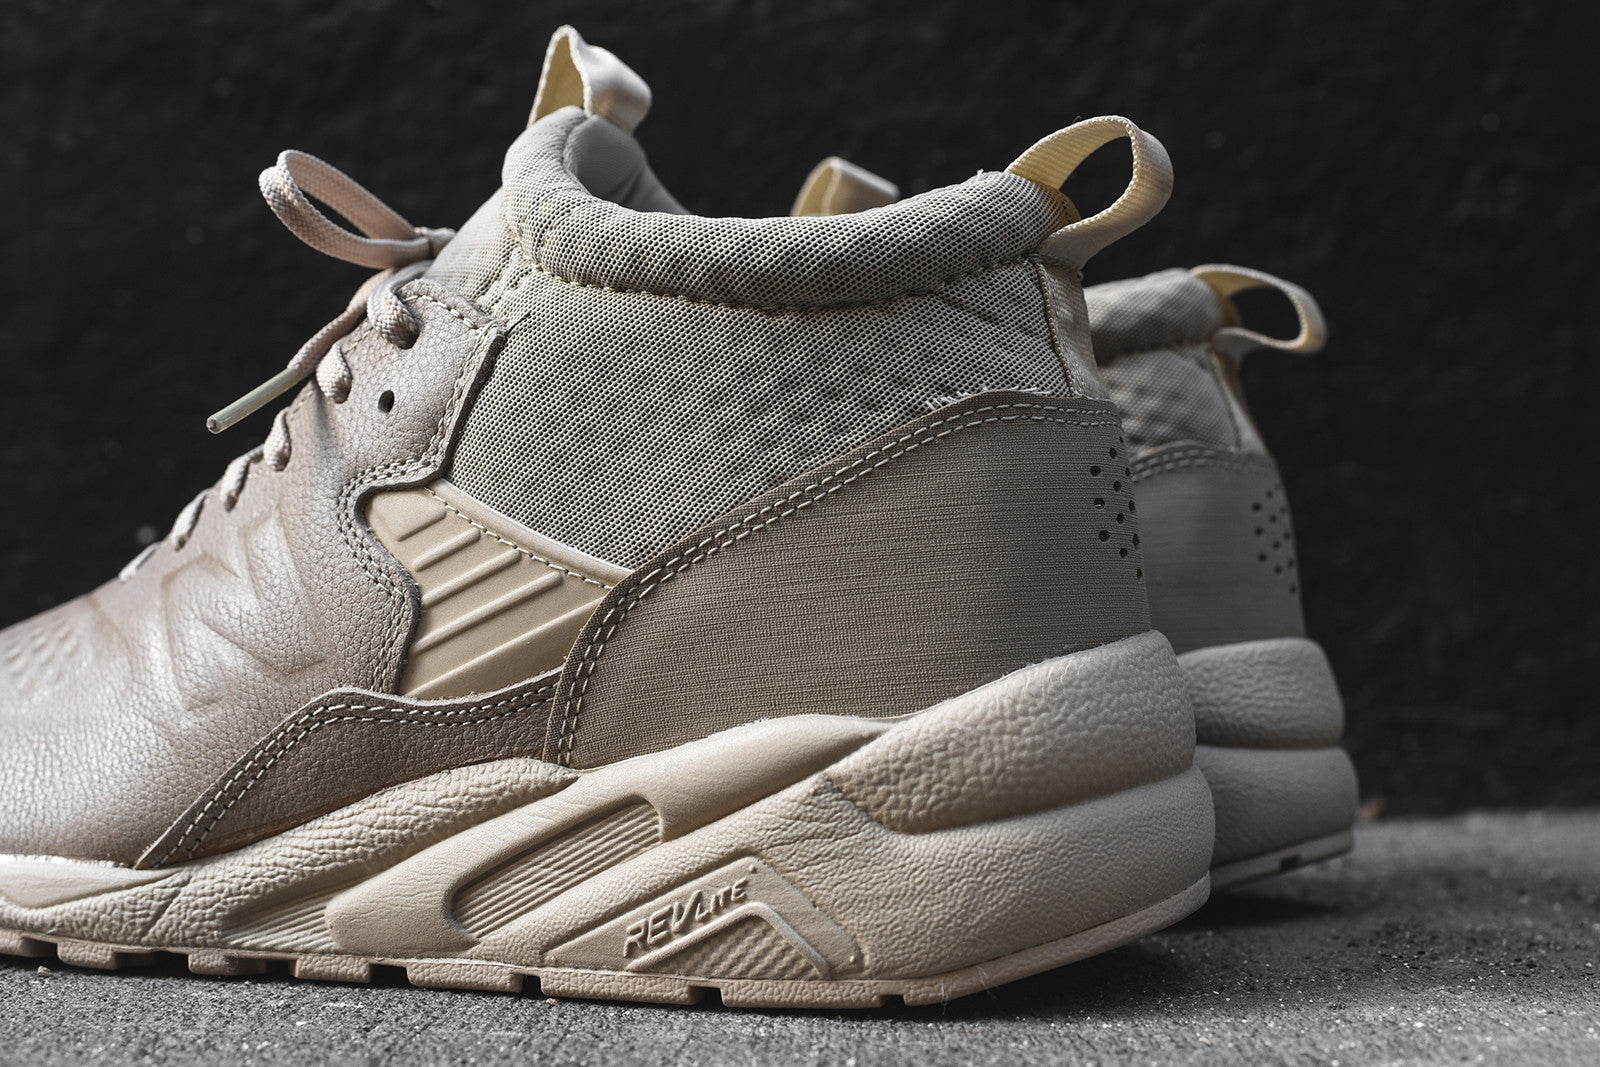 New Balance 580 Deconstructed Mid - Beige